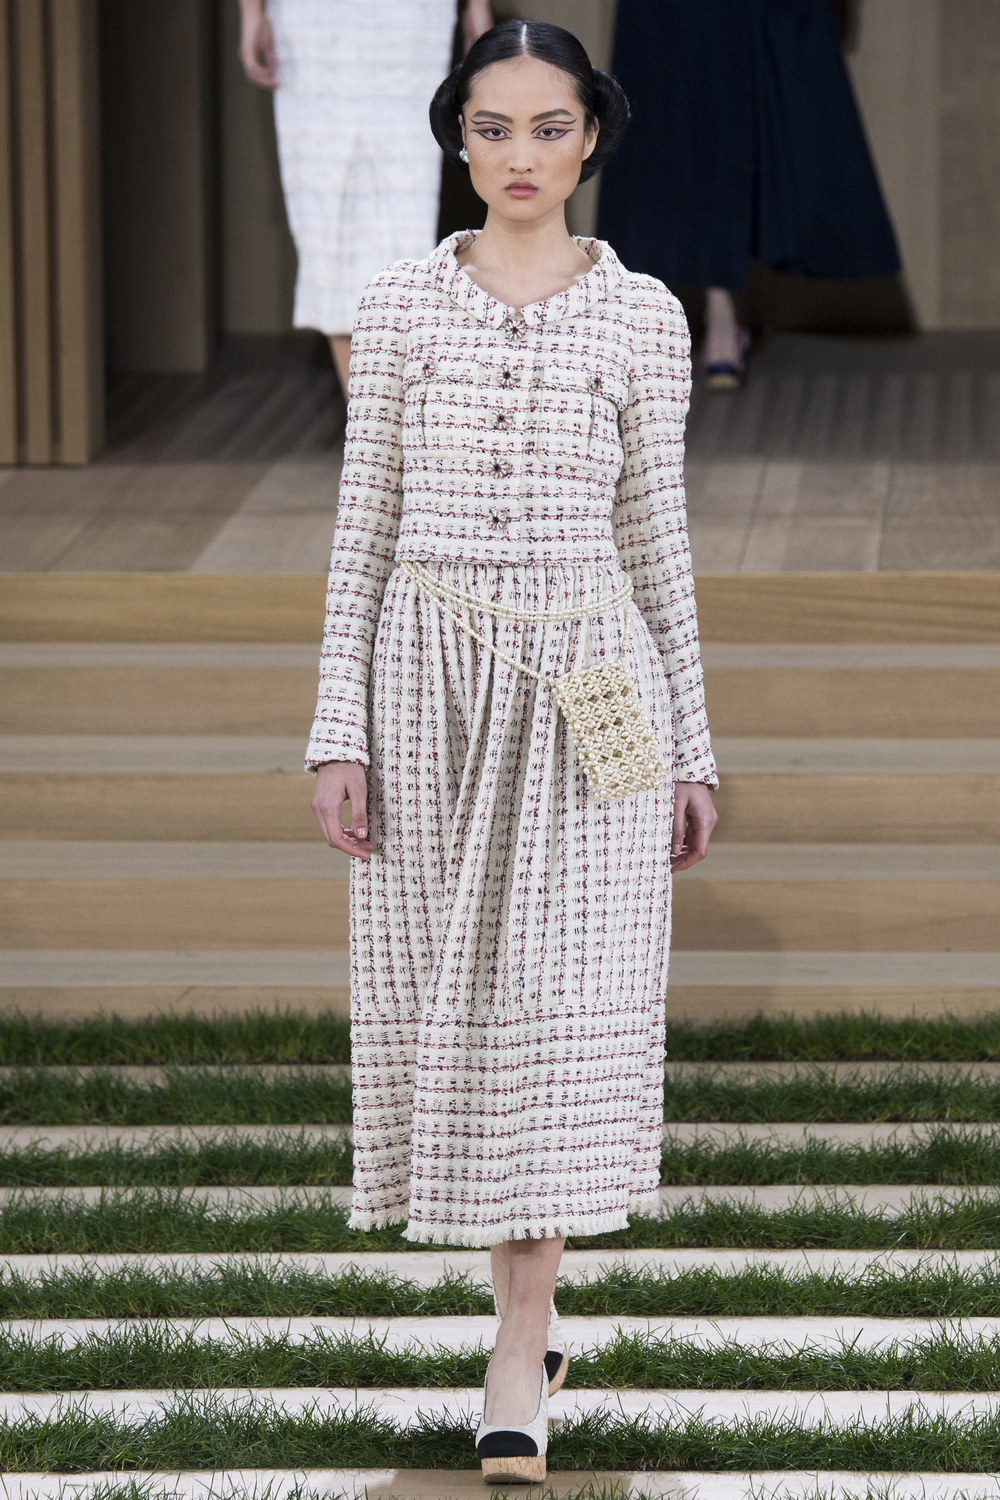 Chanel-Couture-Spring-2016-Paris-Fashion-Week-4.jpg